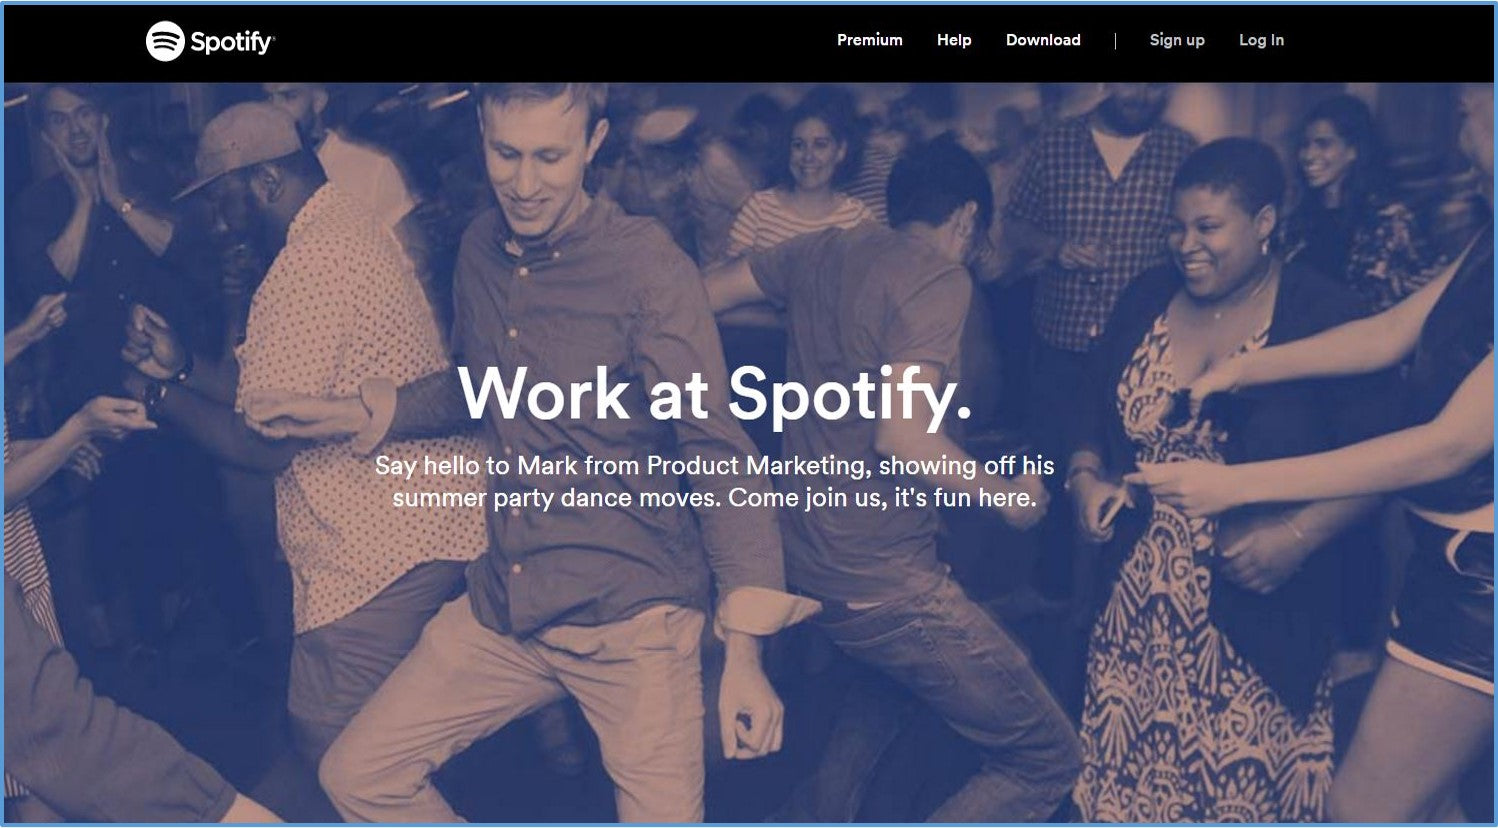 Spotify career page design